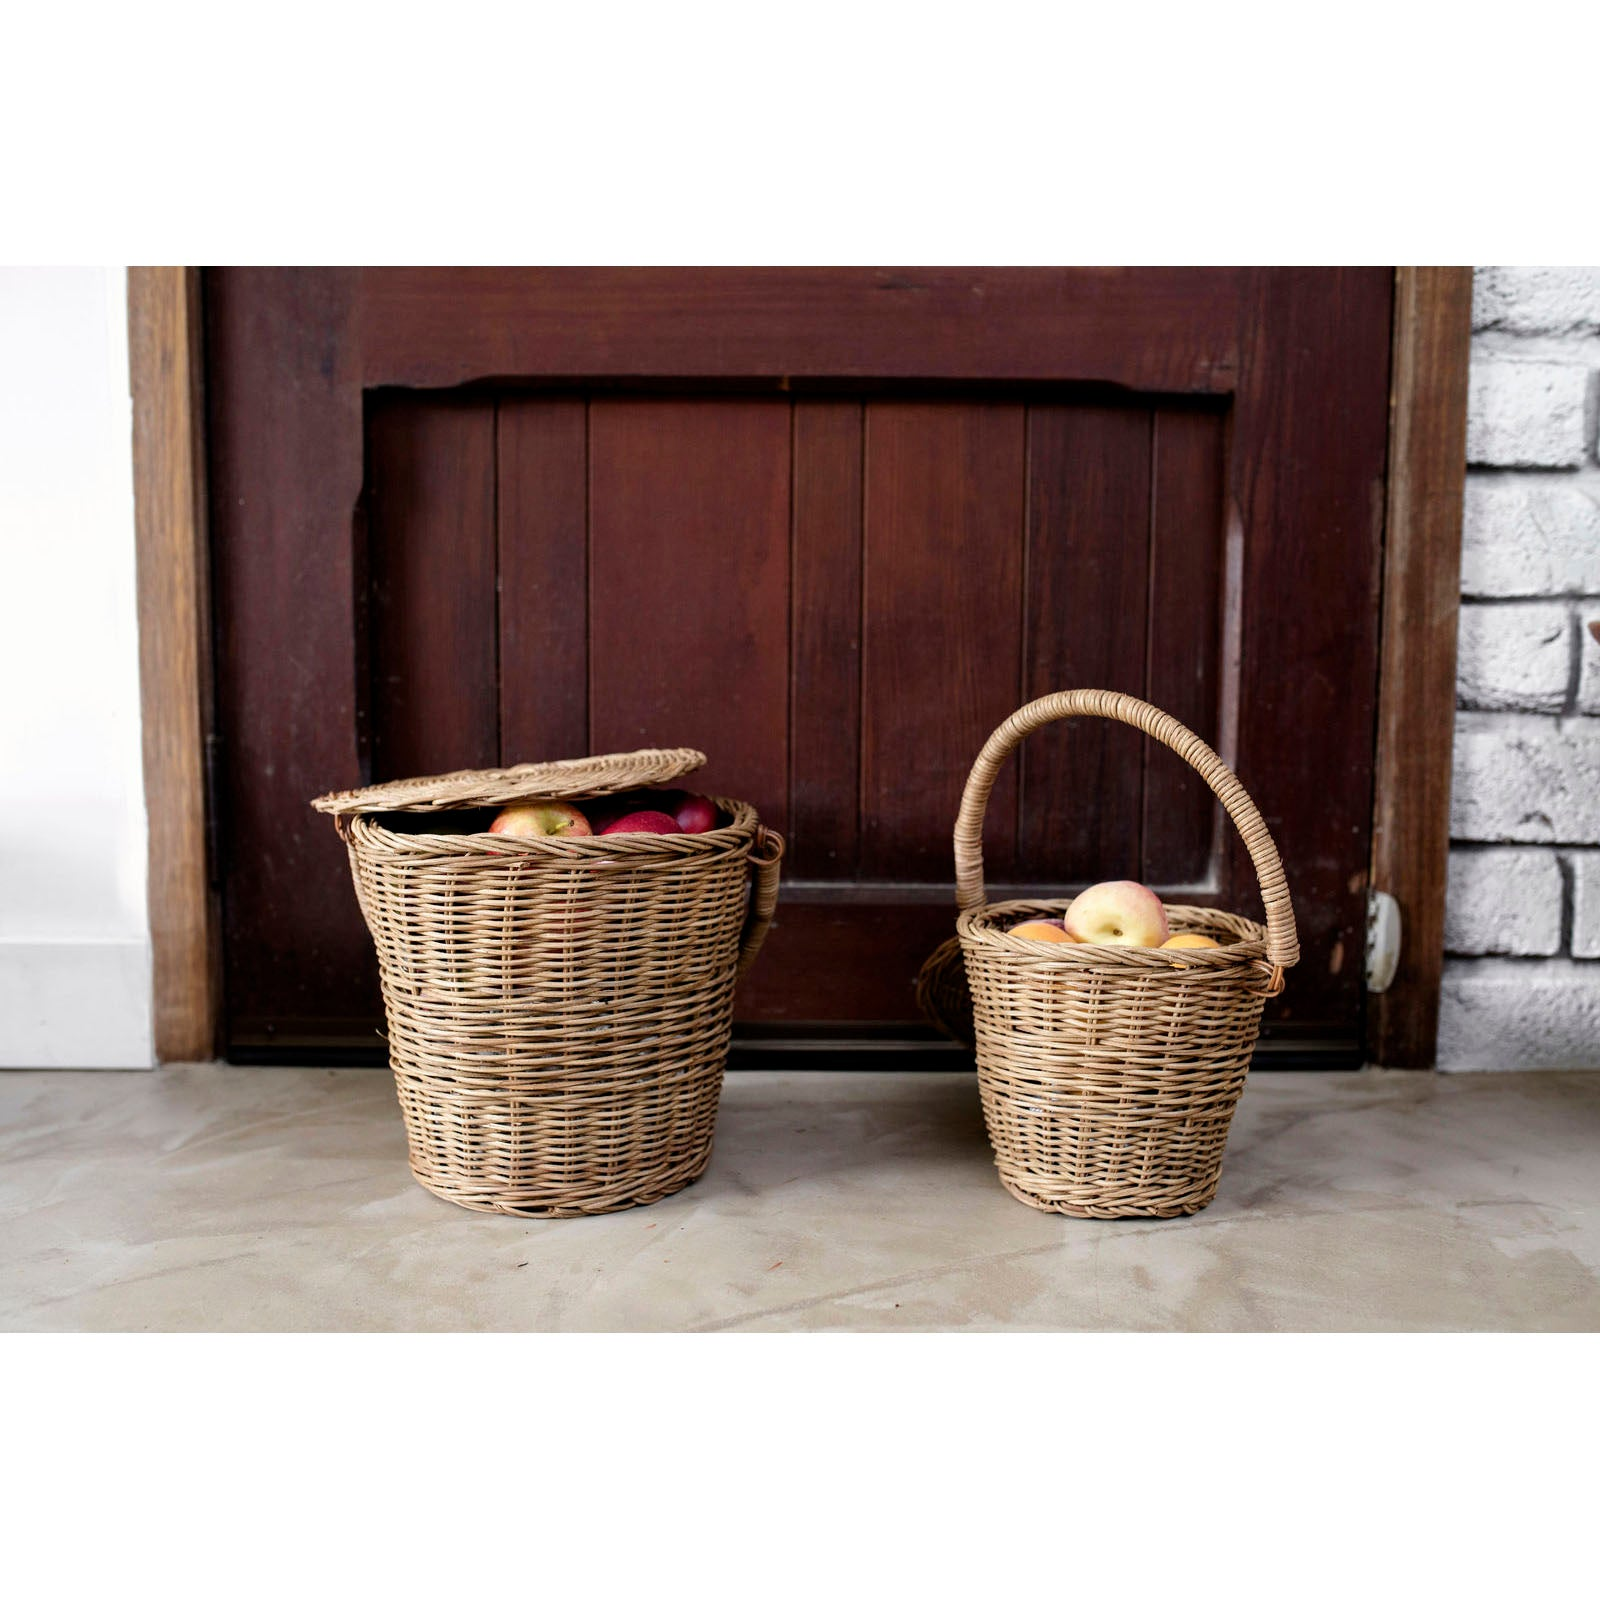 Ollie Ella Apple Basket Large 02